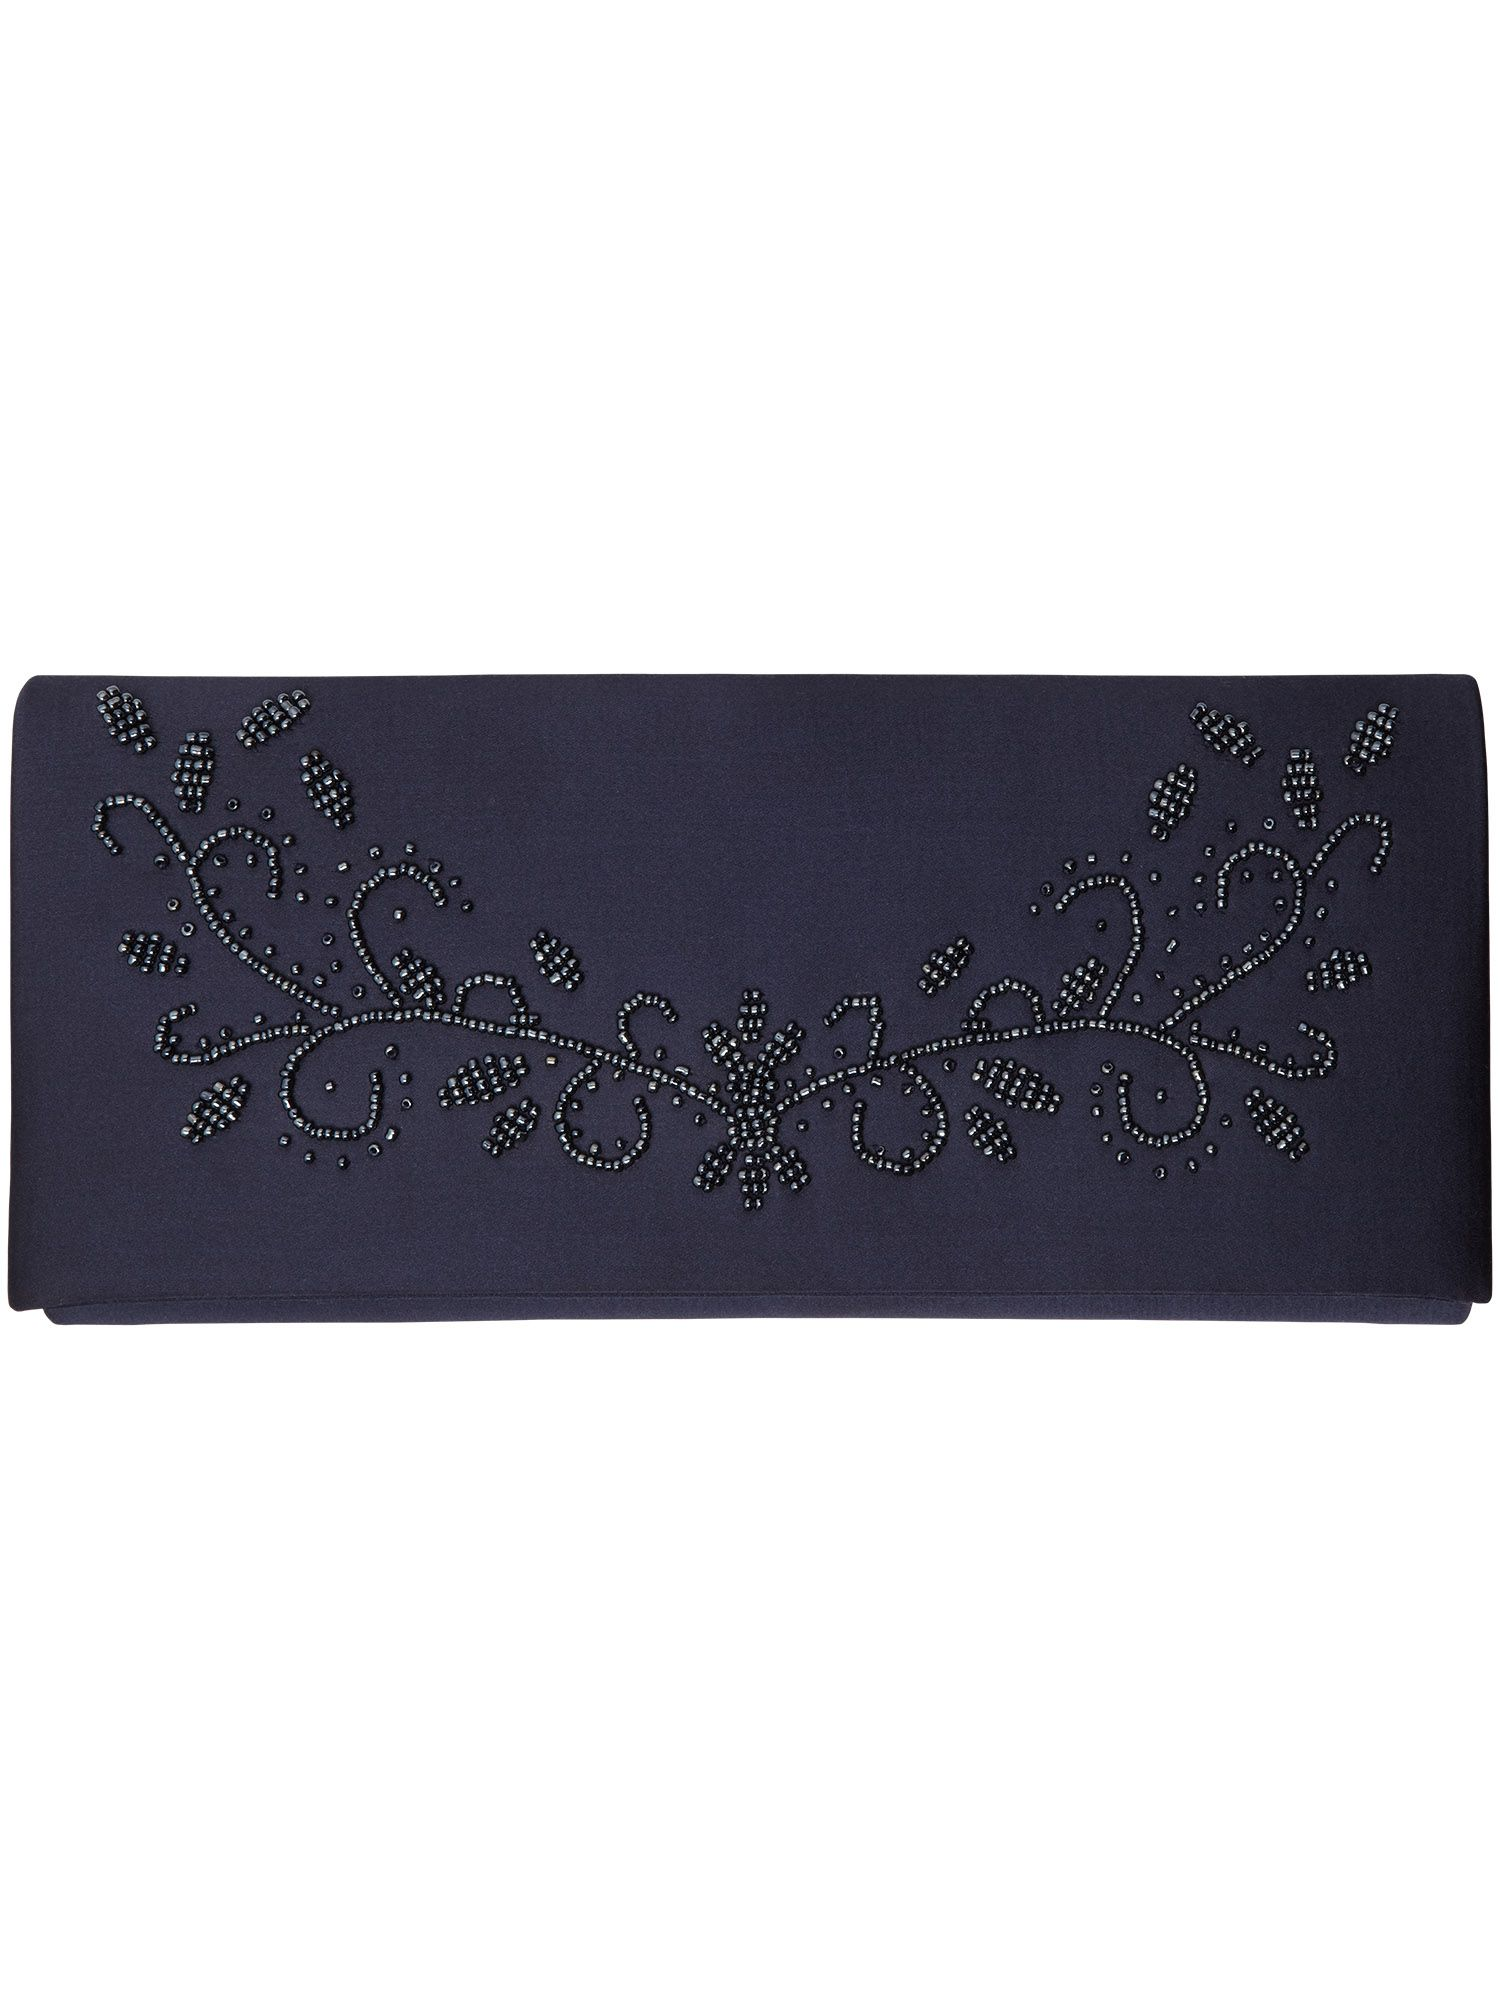 Ava beaded clutch bag